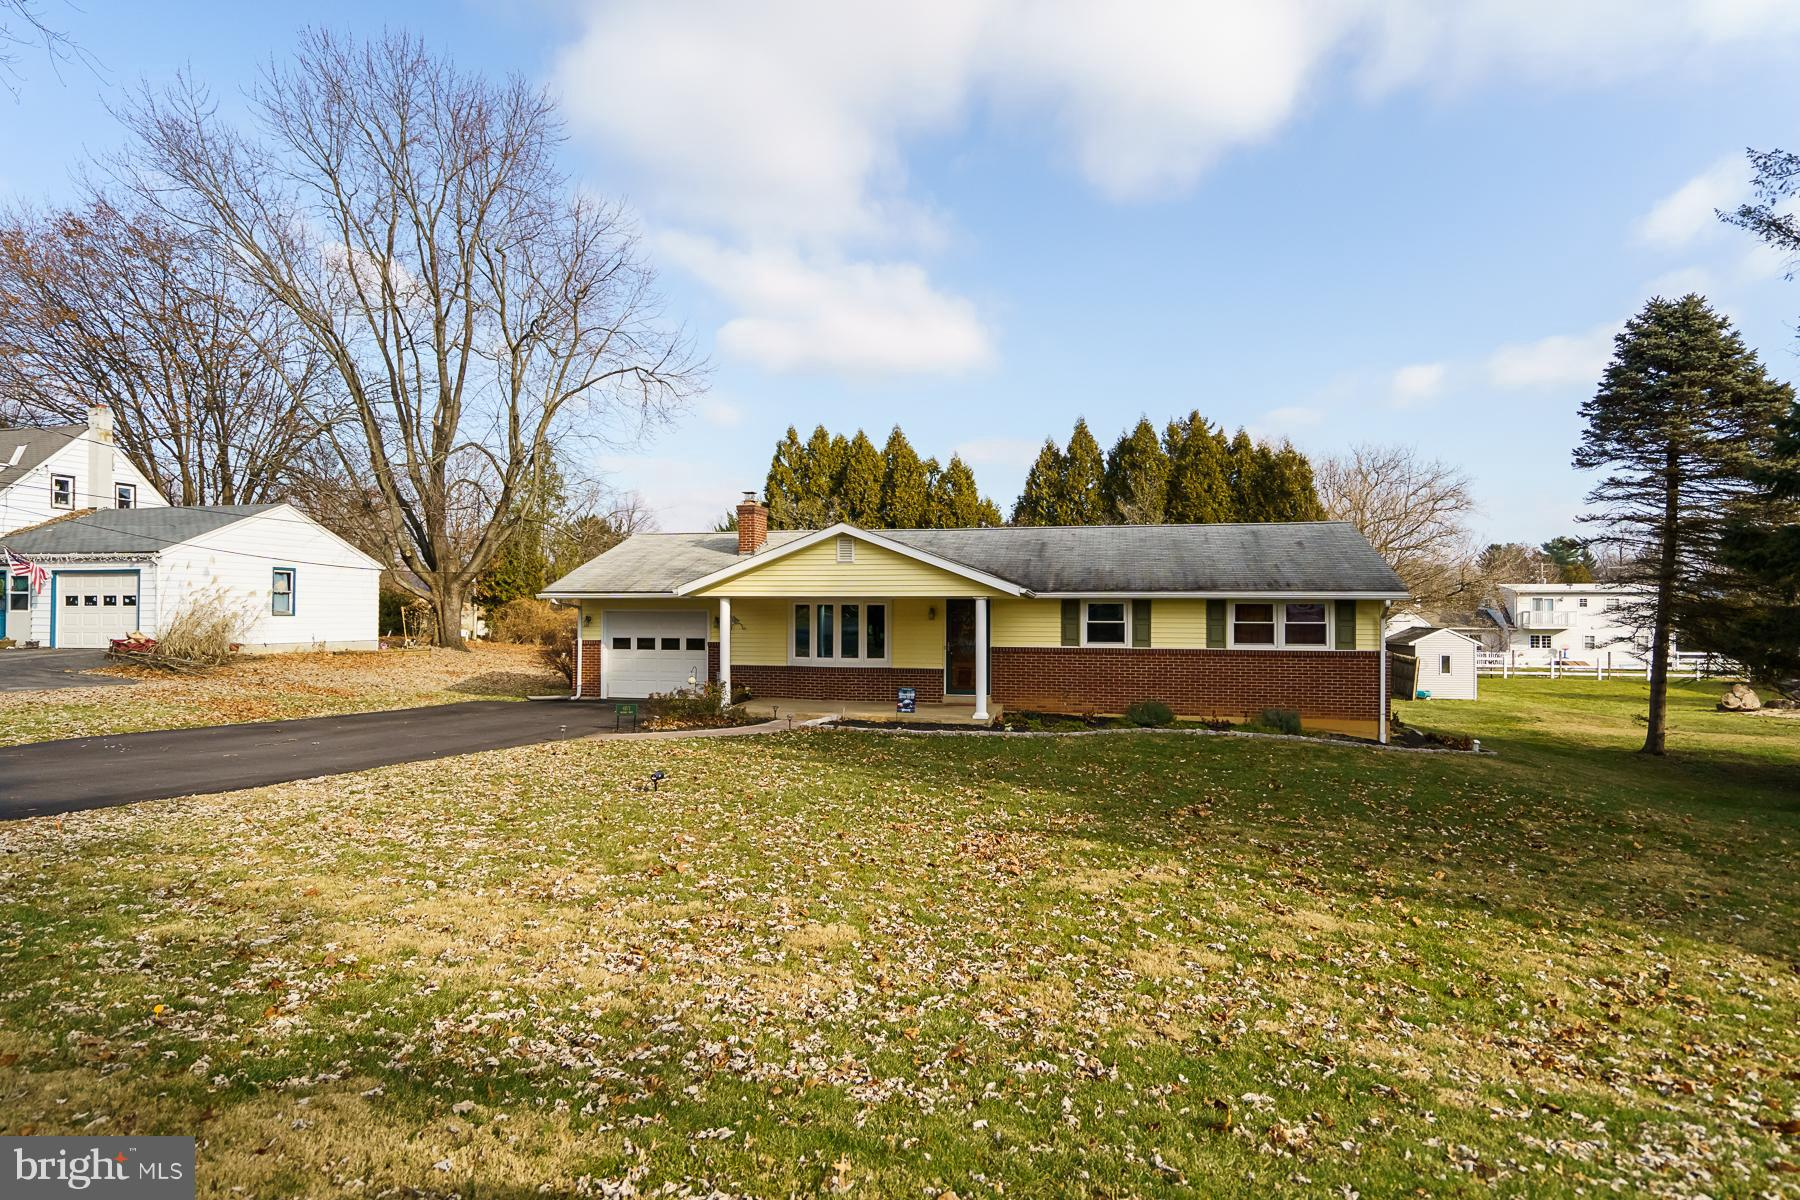 4871 ORCHARD DRIVE, CENTER VALLEY, PA 18034